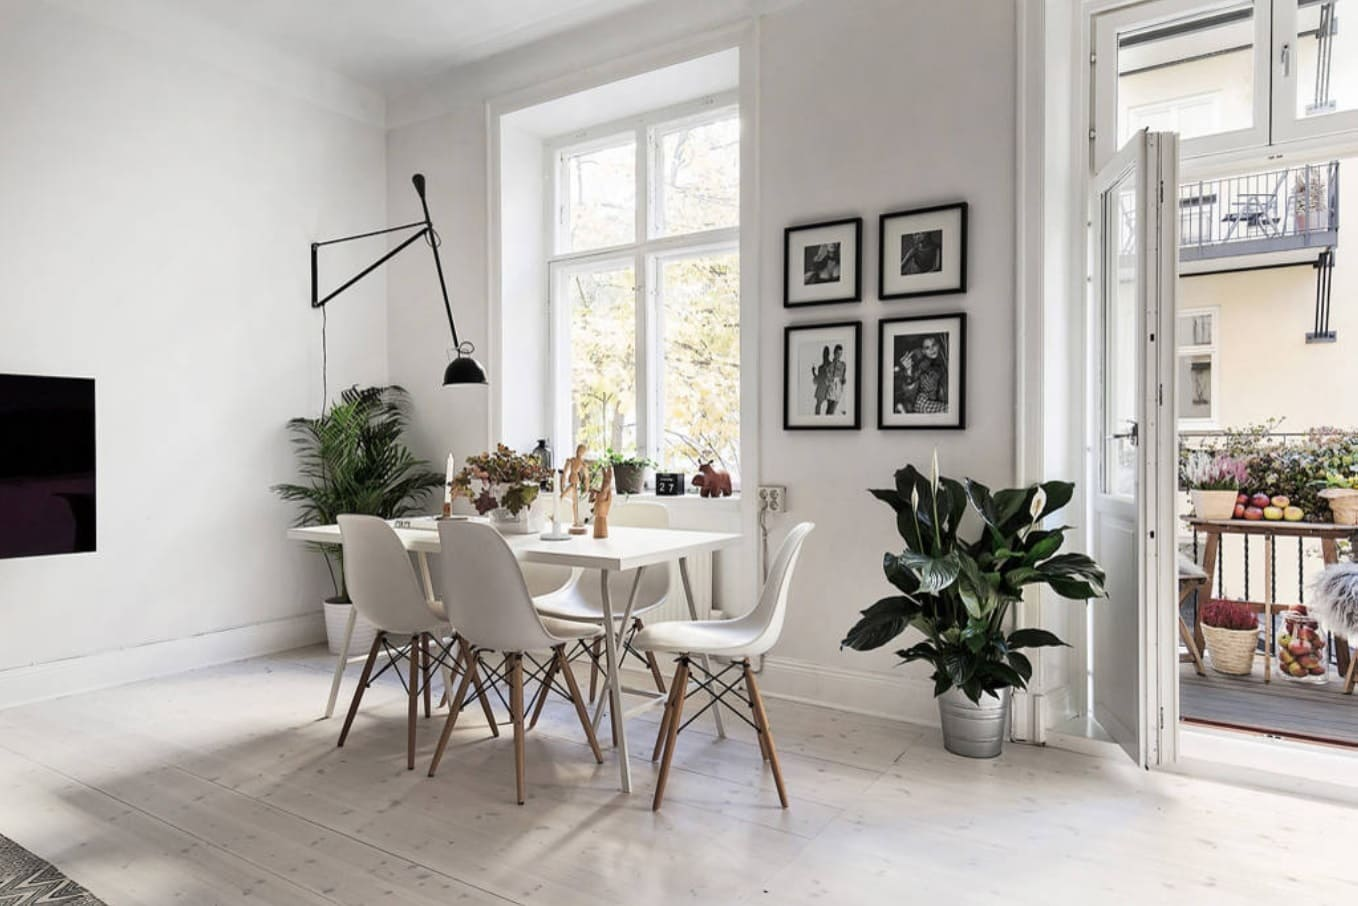 Overview of 10+ Biggest Home Design Trends in 2019 so Far. White designed dining room with black overhang lamp and plant decoration